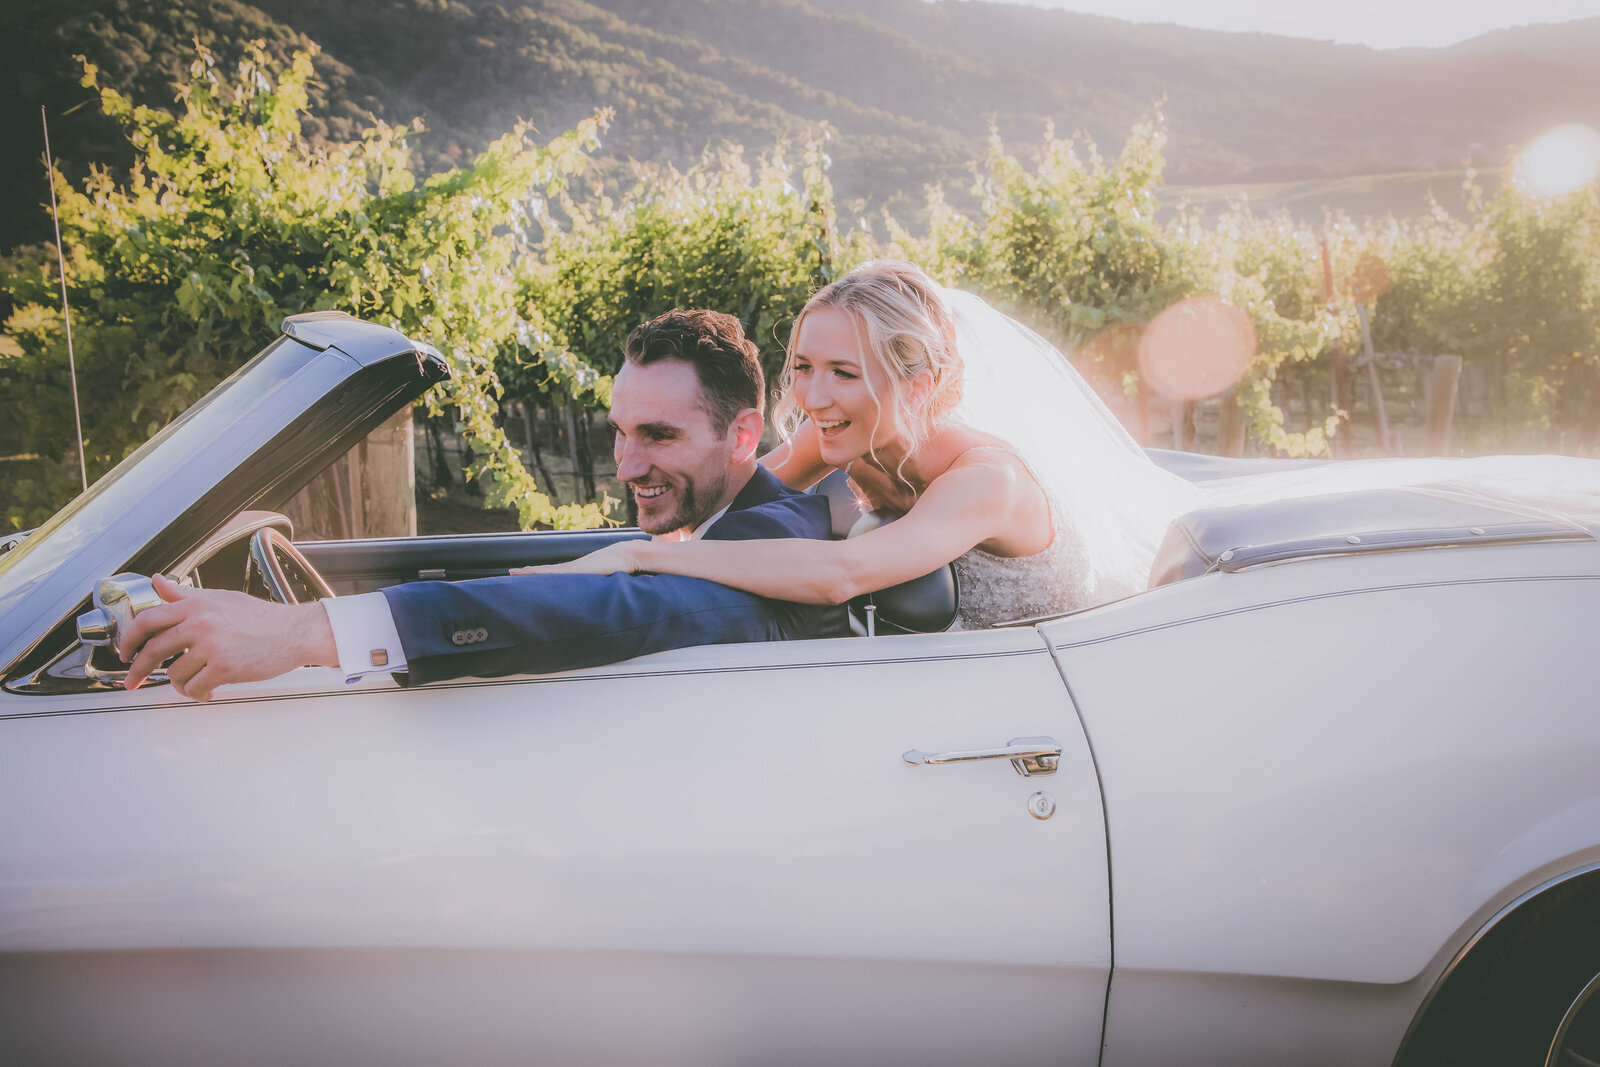 Groom and bride look into car mirror during sunset at a Carmel vineyard.